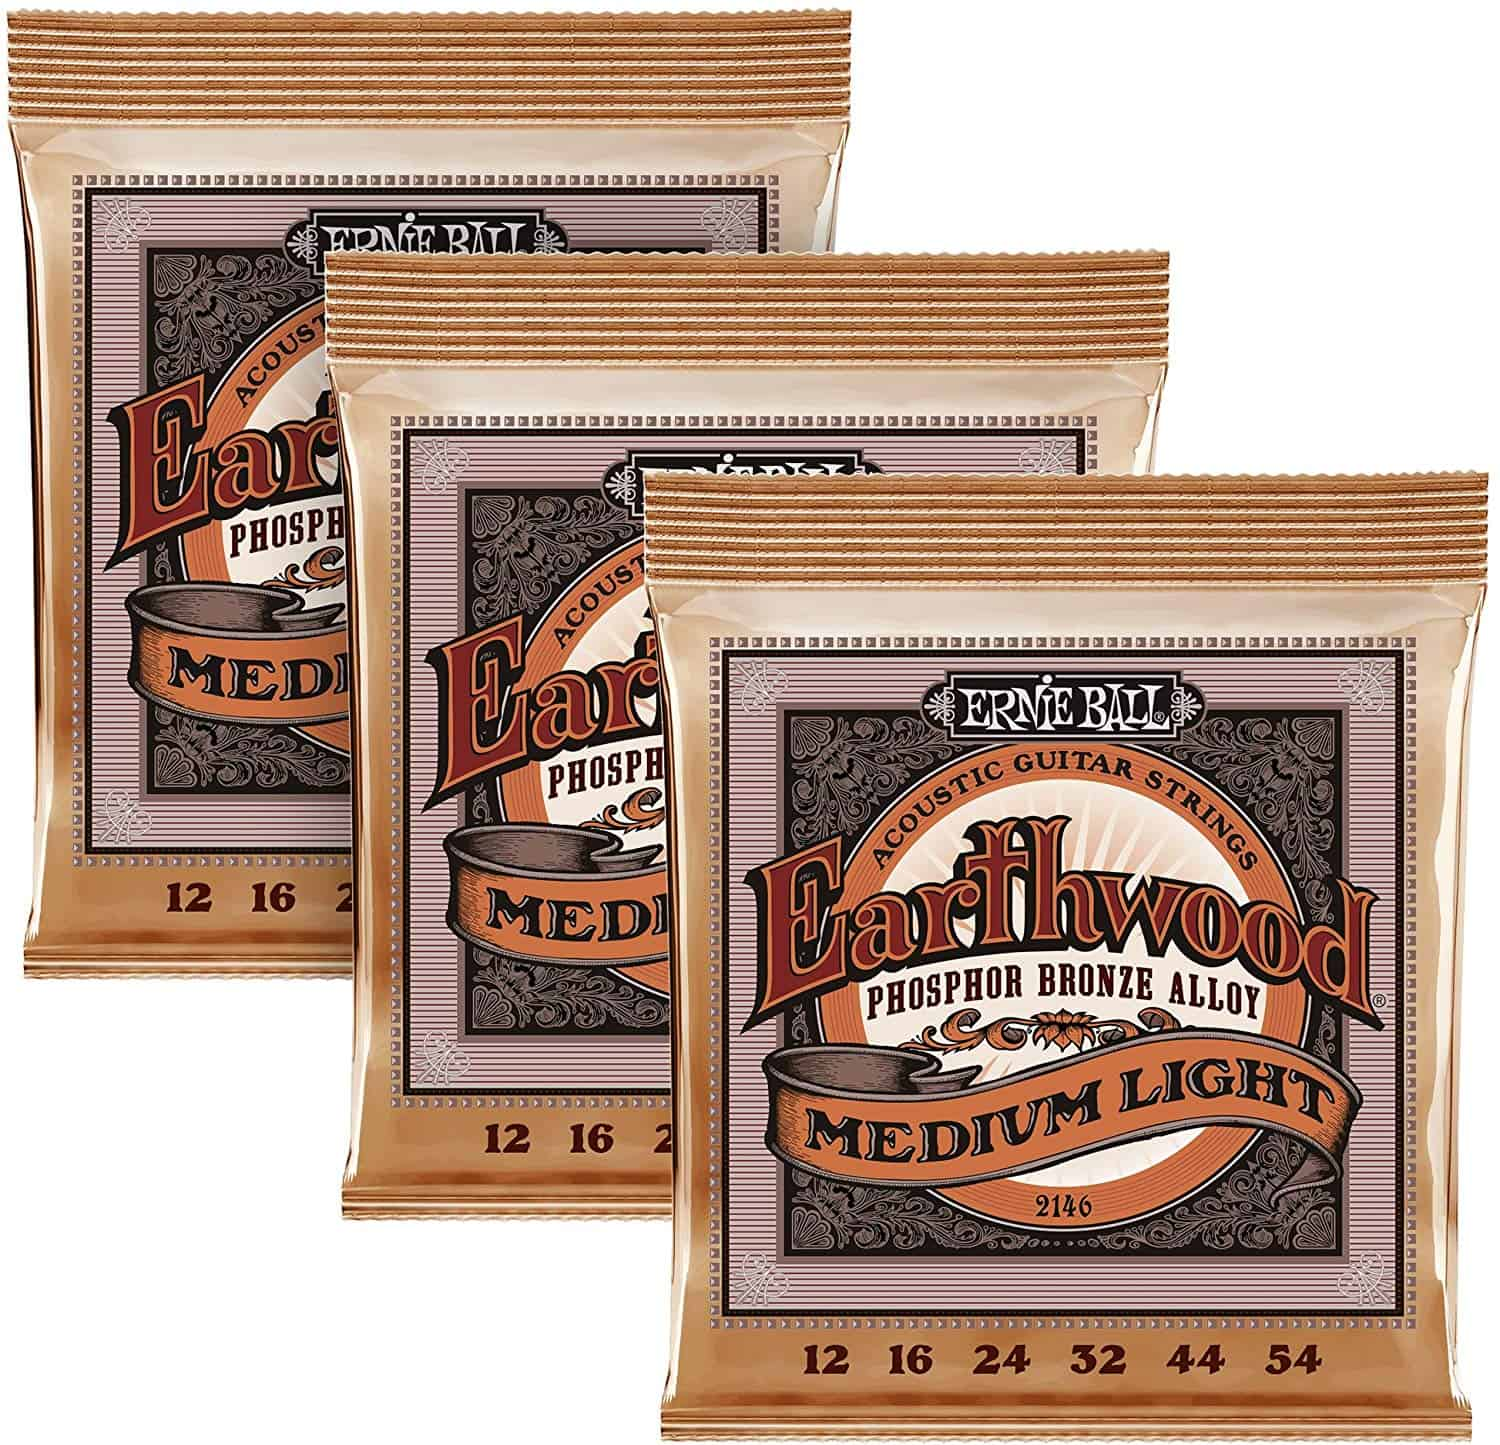 Ernie Ball Earthwood Medium Light Phosphor Bronze Strings